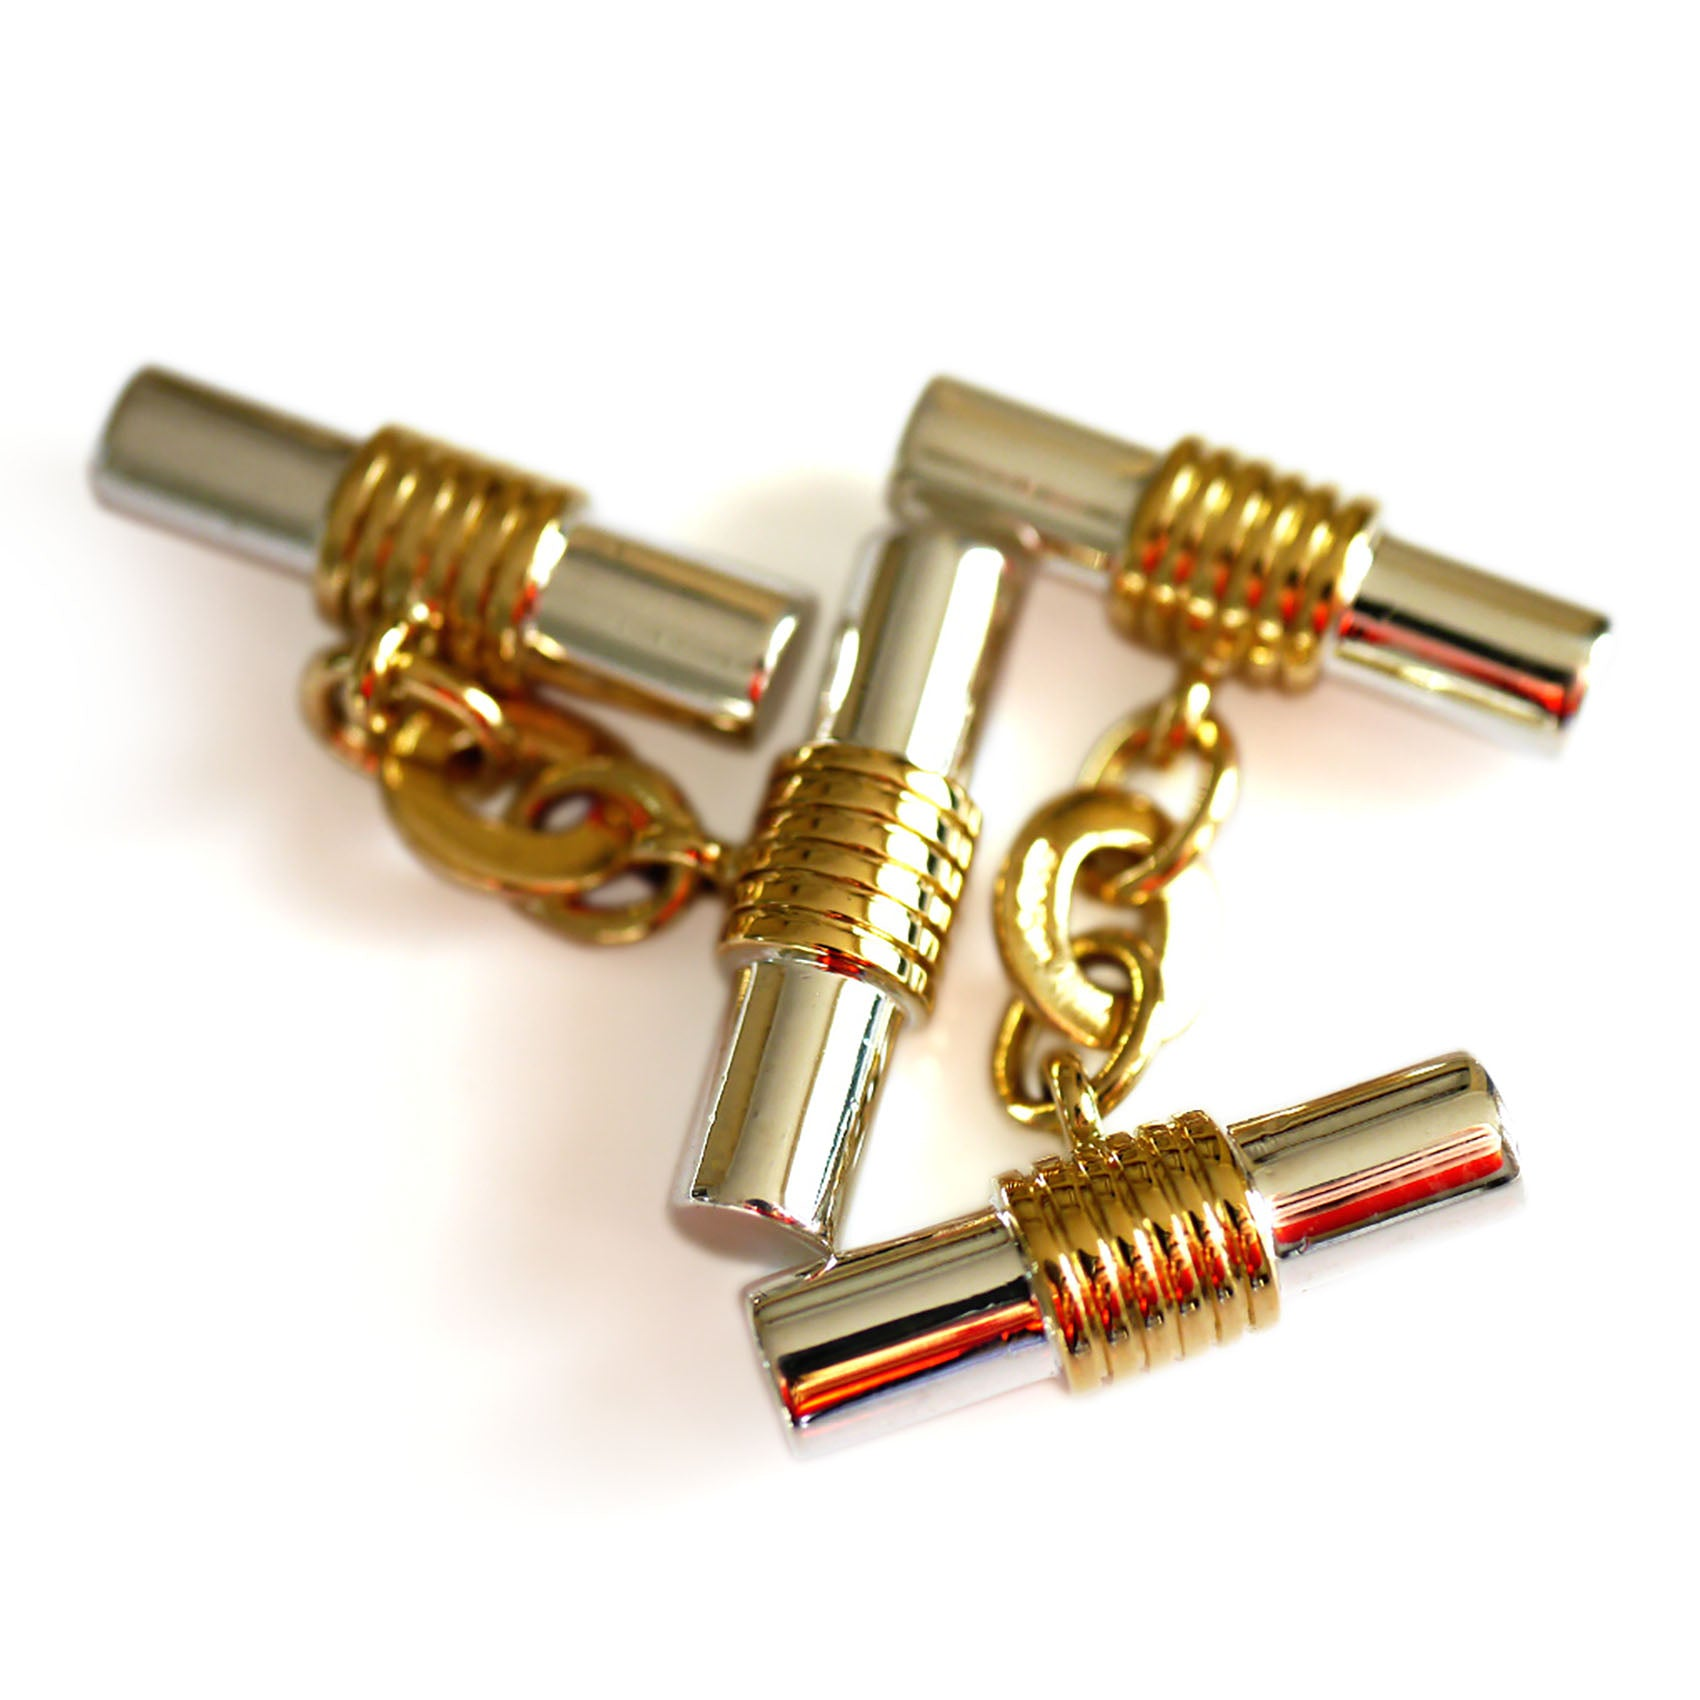 Silver Linings: Double Barrel Cufflinks